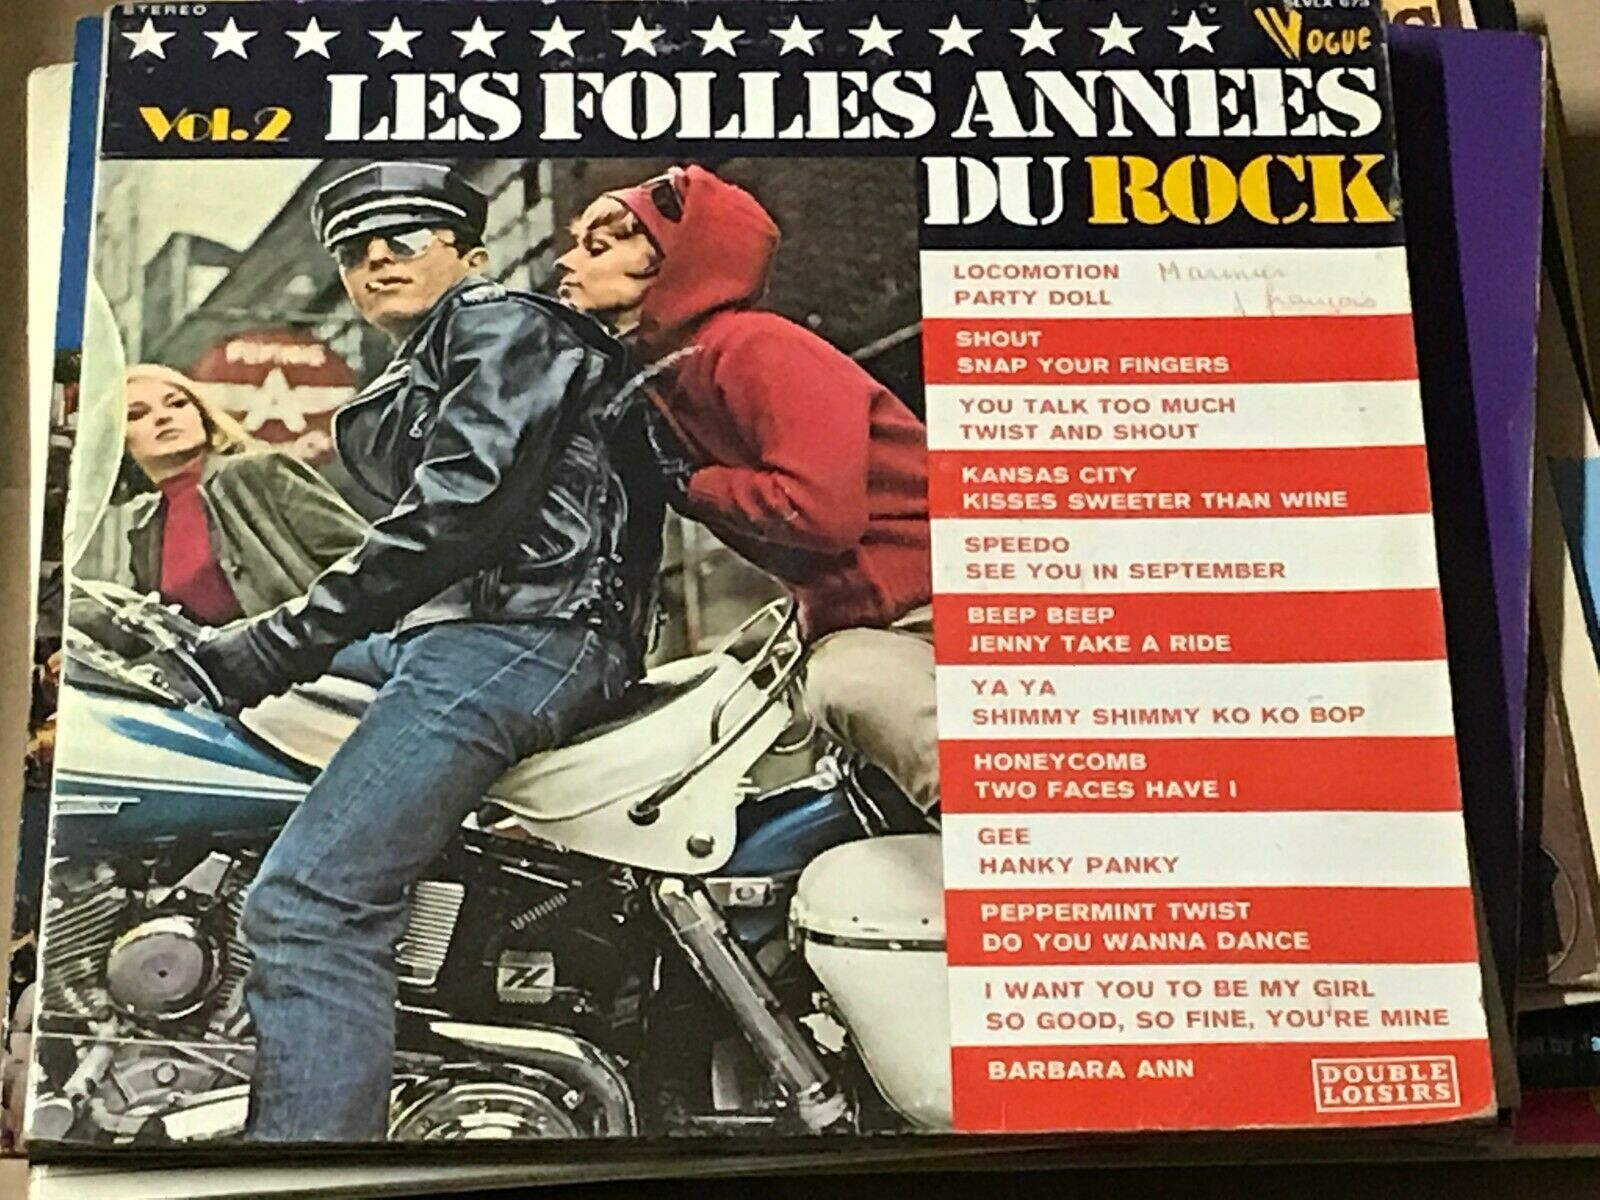 Buy vinyl artist% LES FOLLES ANNEES DU ROCK for sale